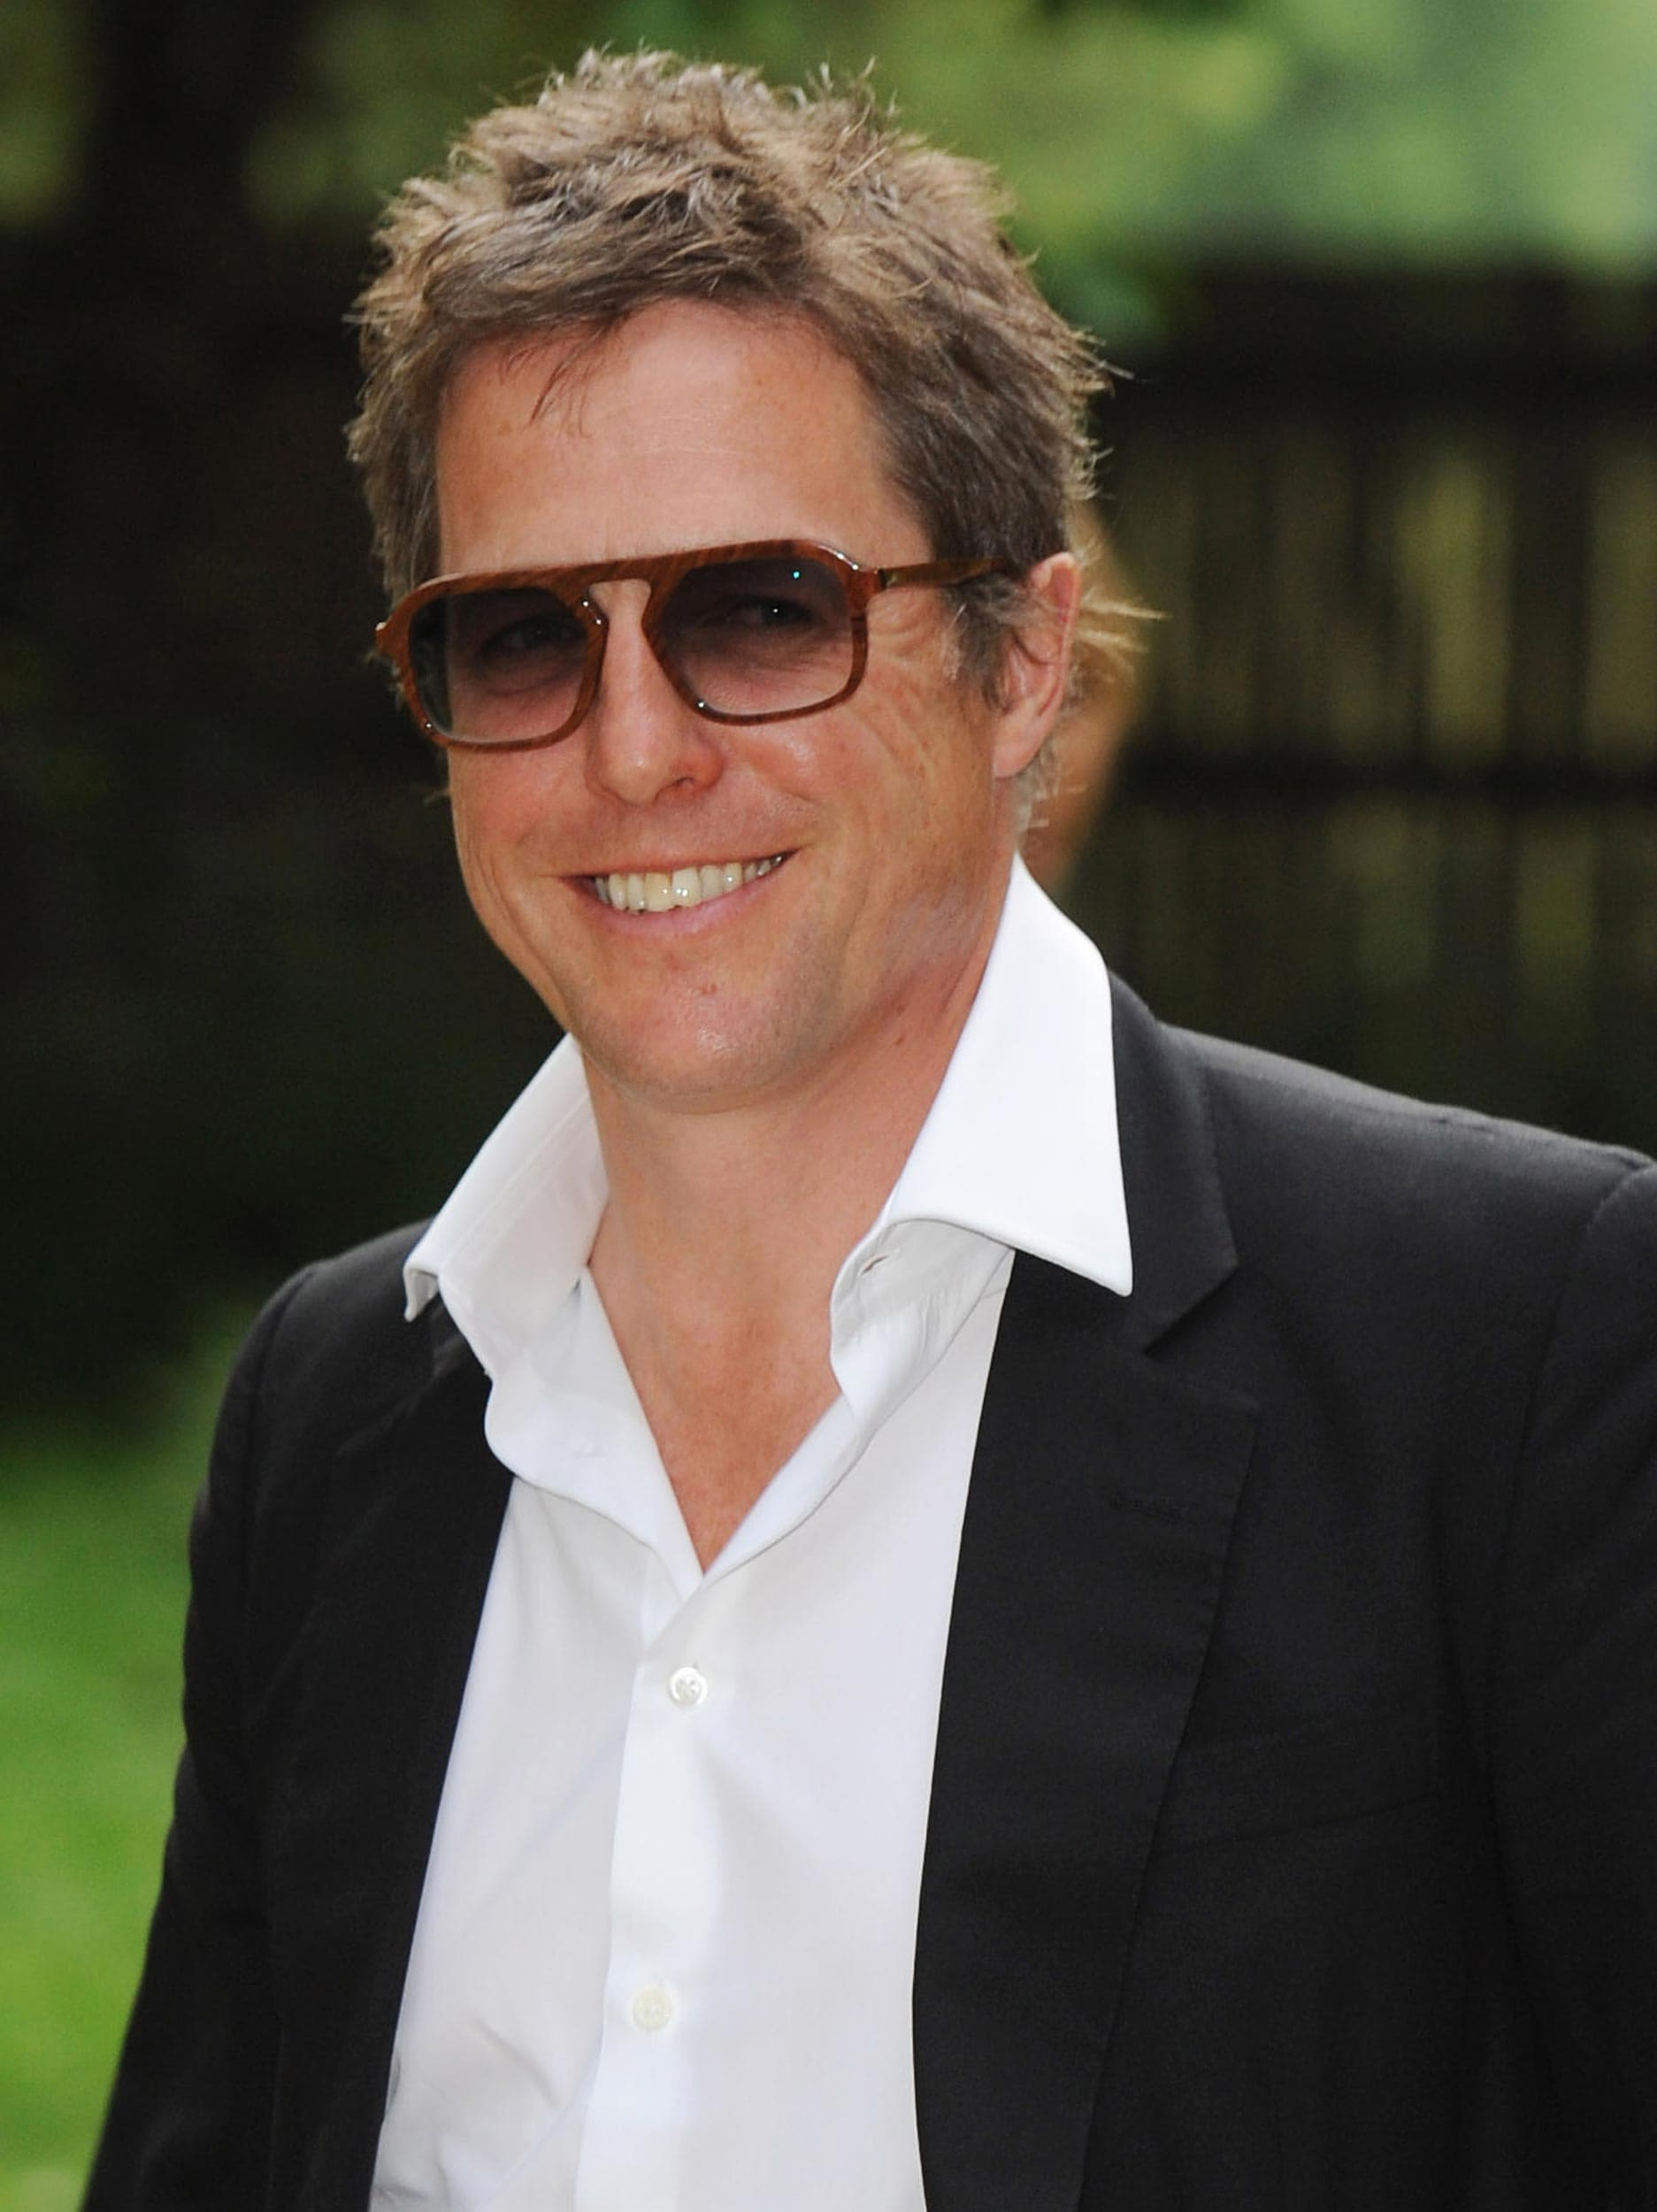 Hugh Grant For mobile